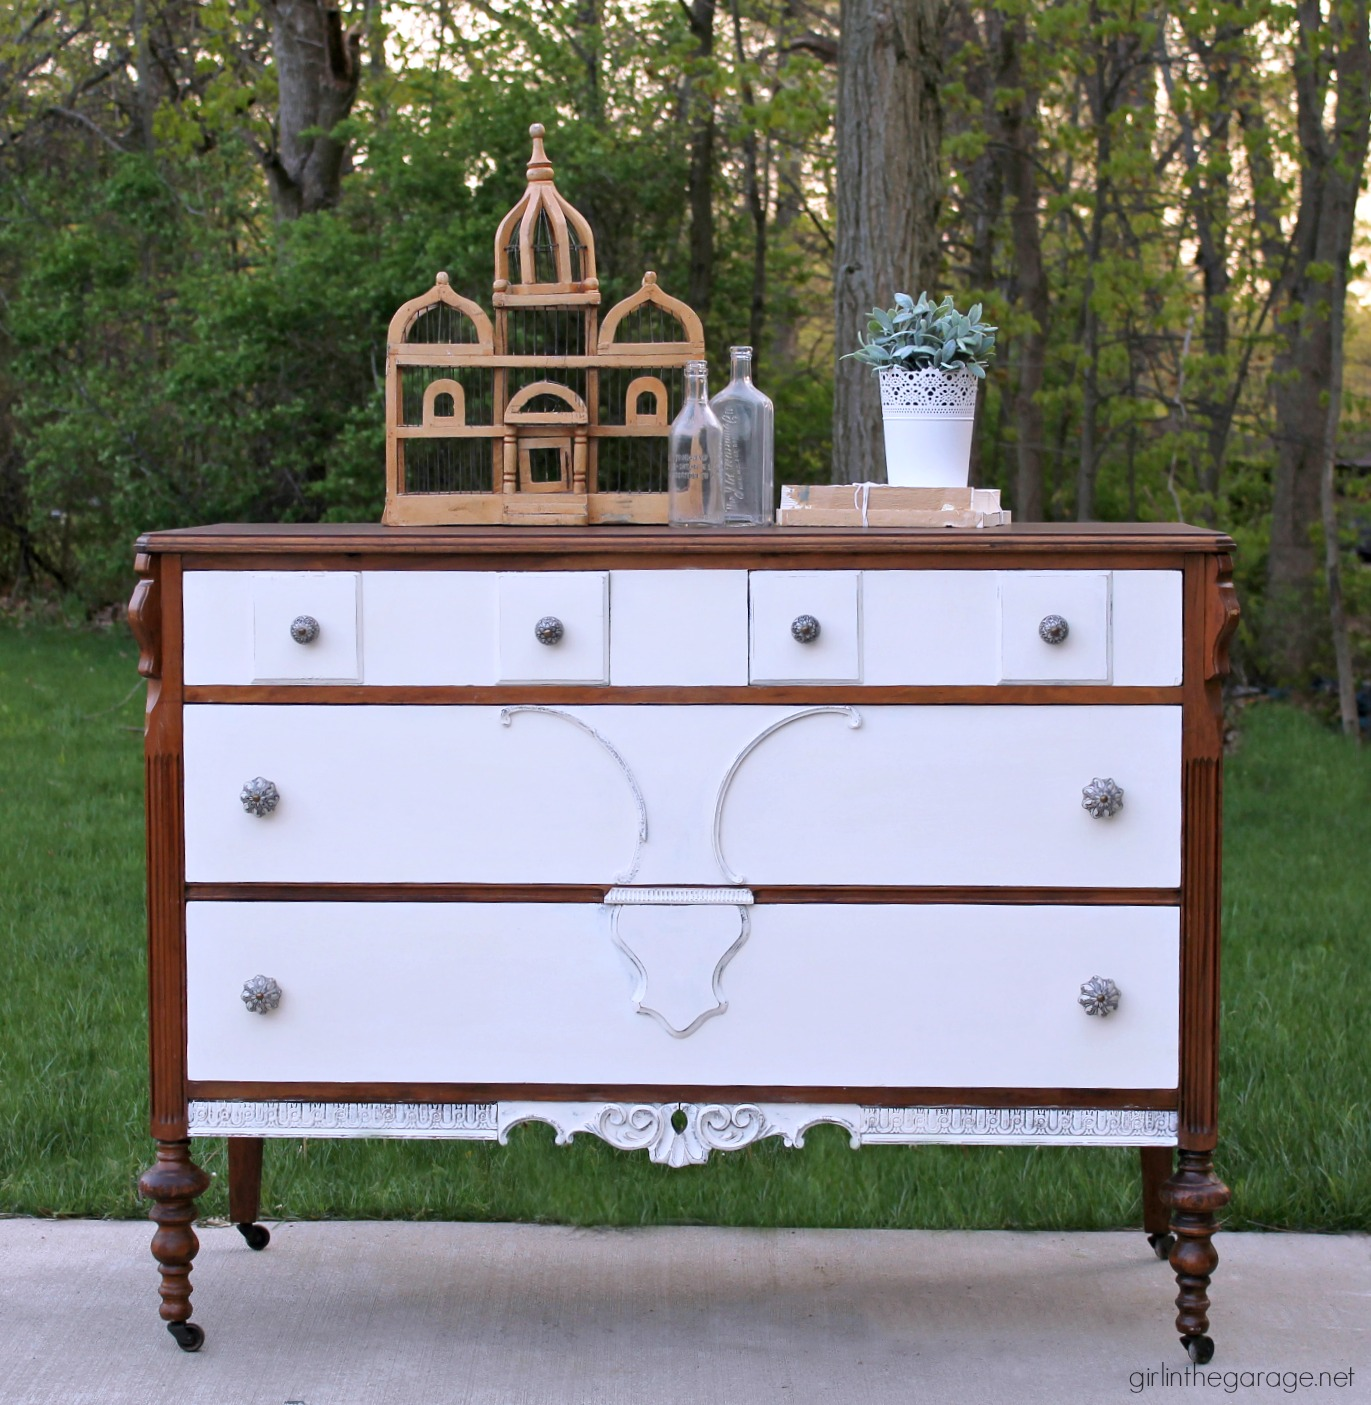 The drawers of this dresser were painted white with the frame left as a dark brown, giving it a gorgeous refreshed look